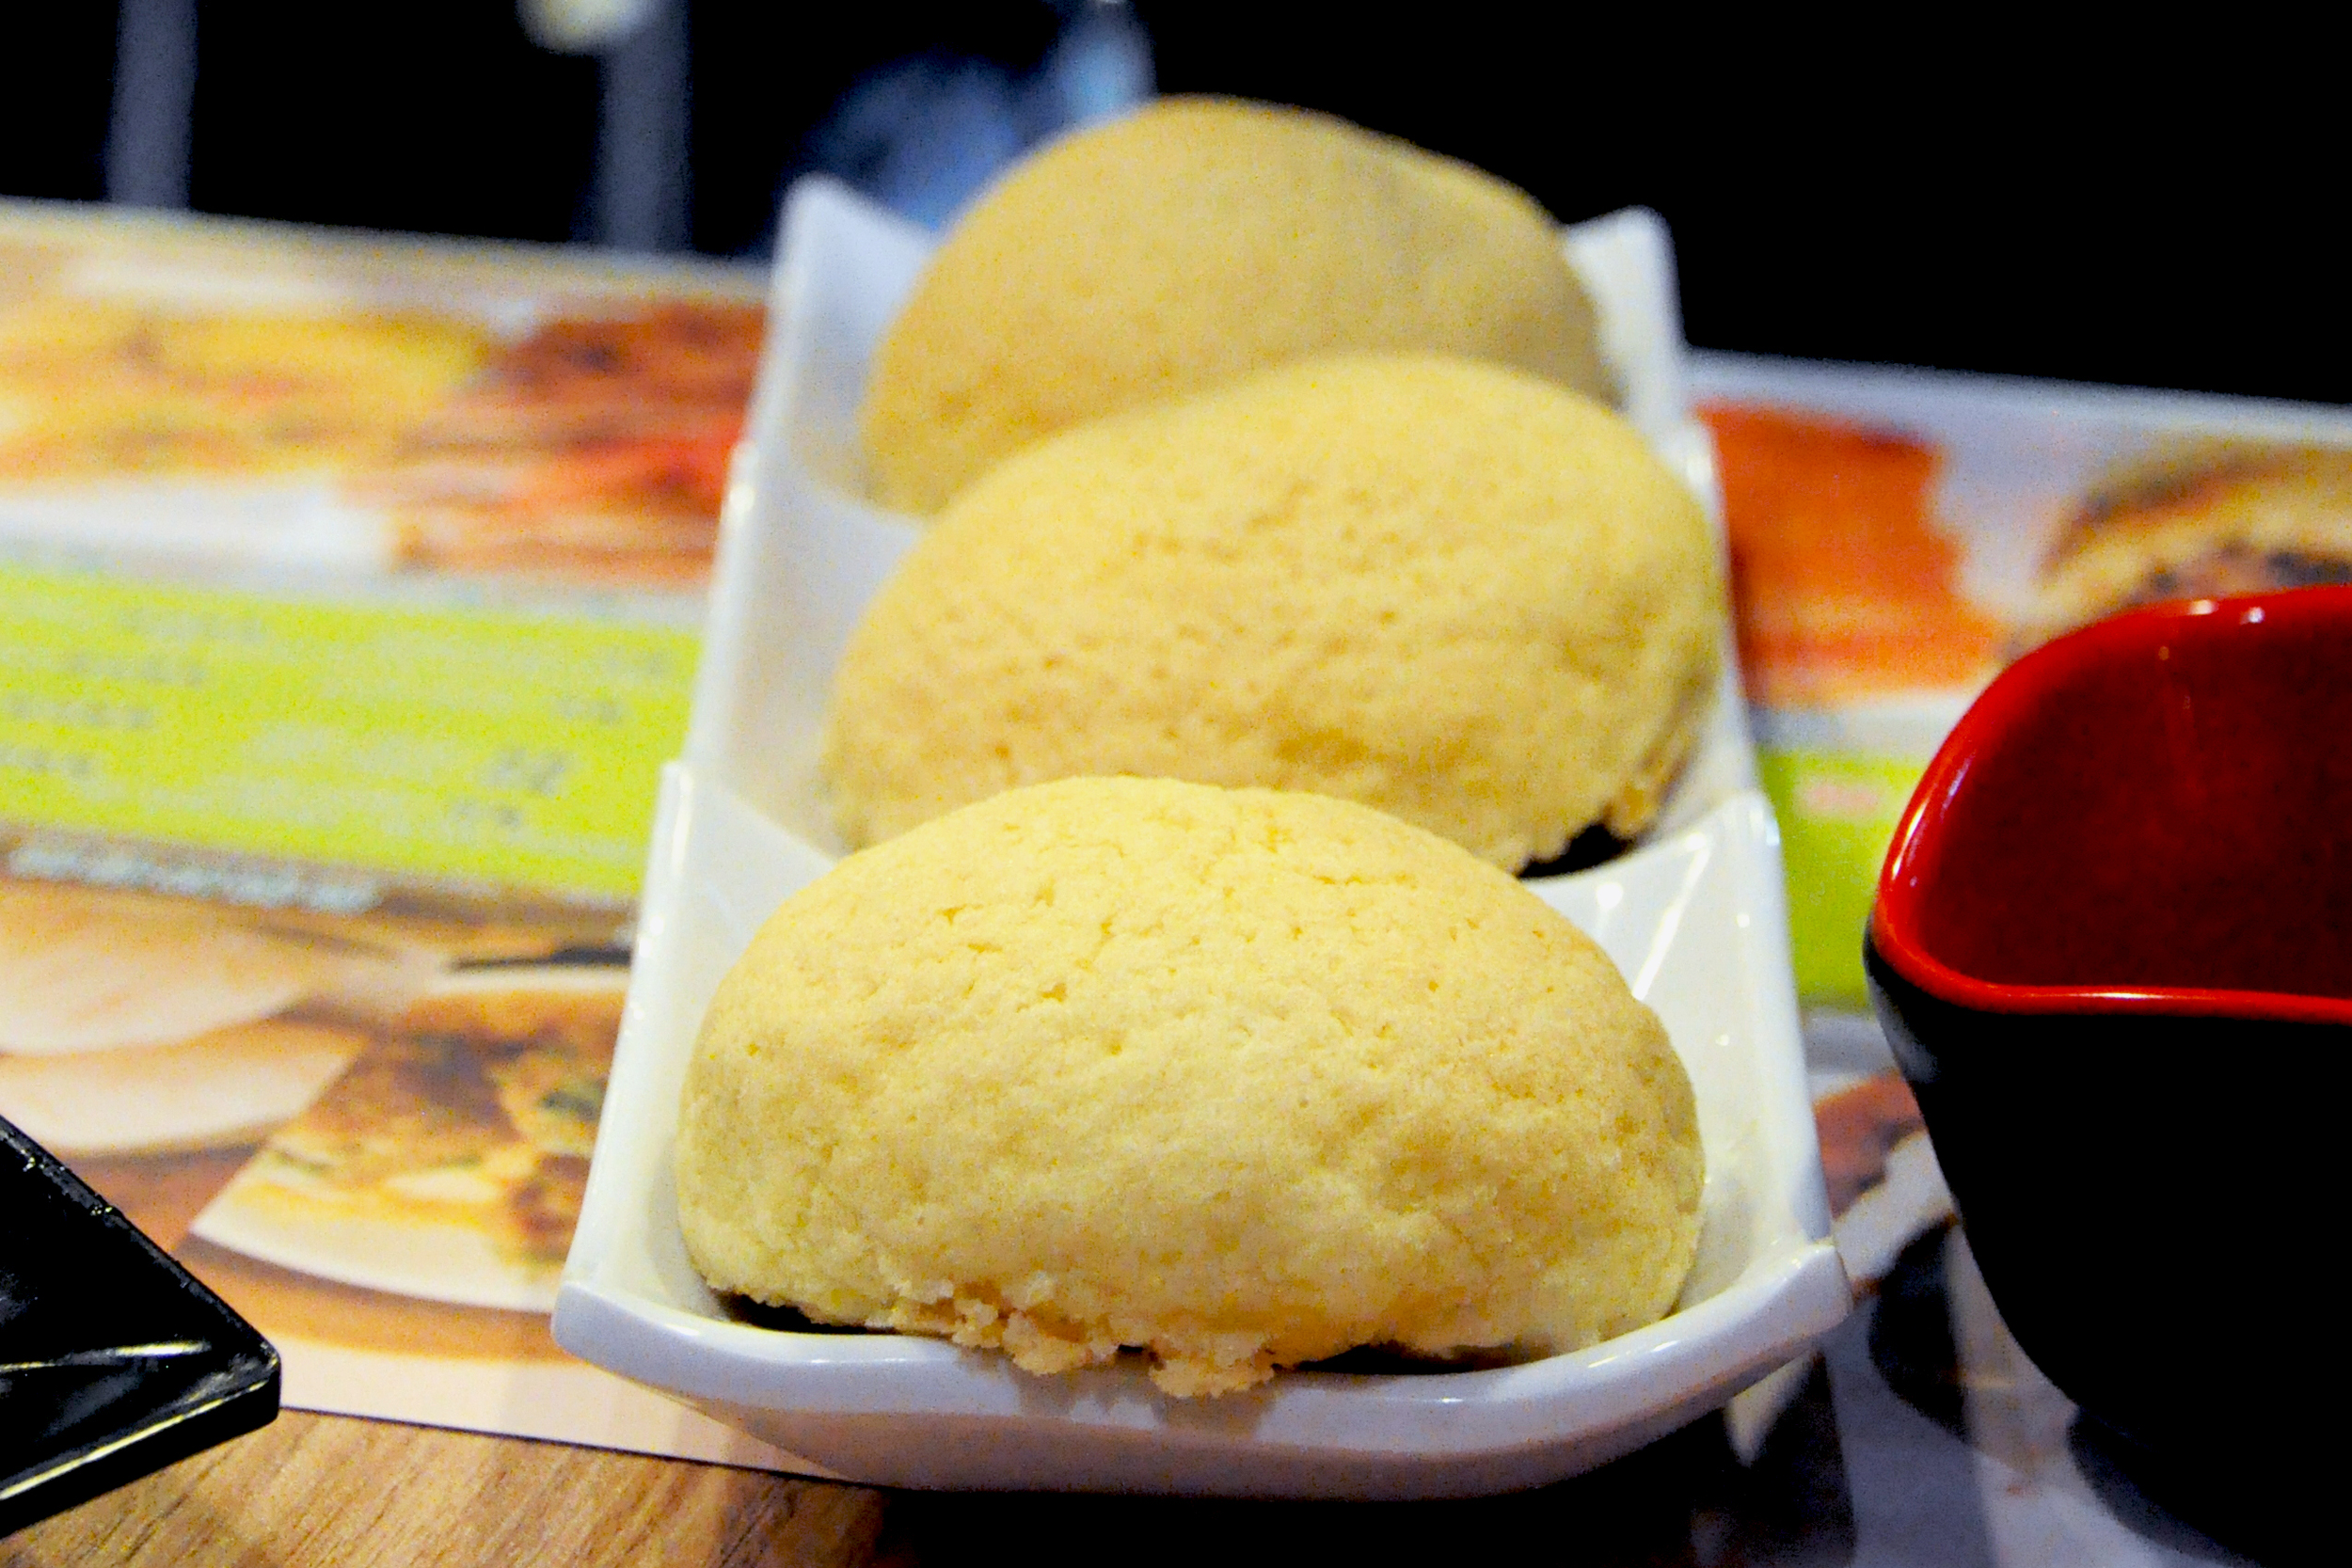 Char siu bao  (barbecue pork buns) at Tim Ho Wan